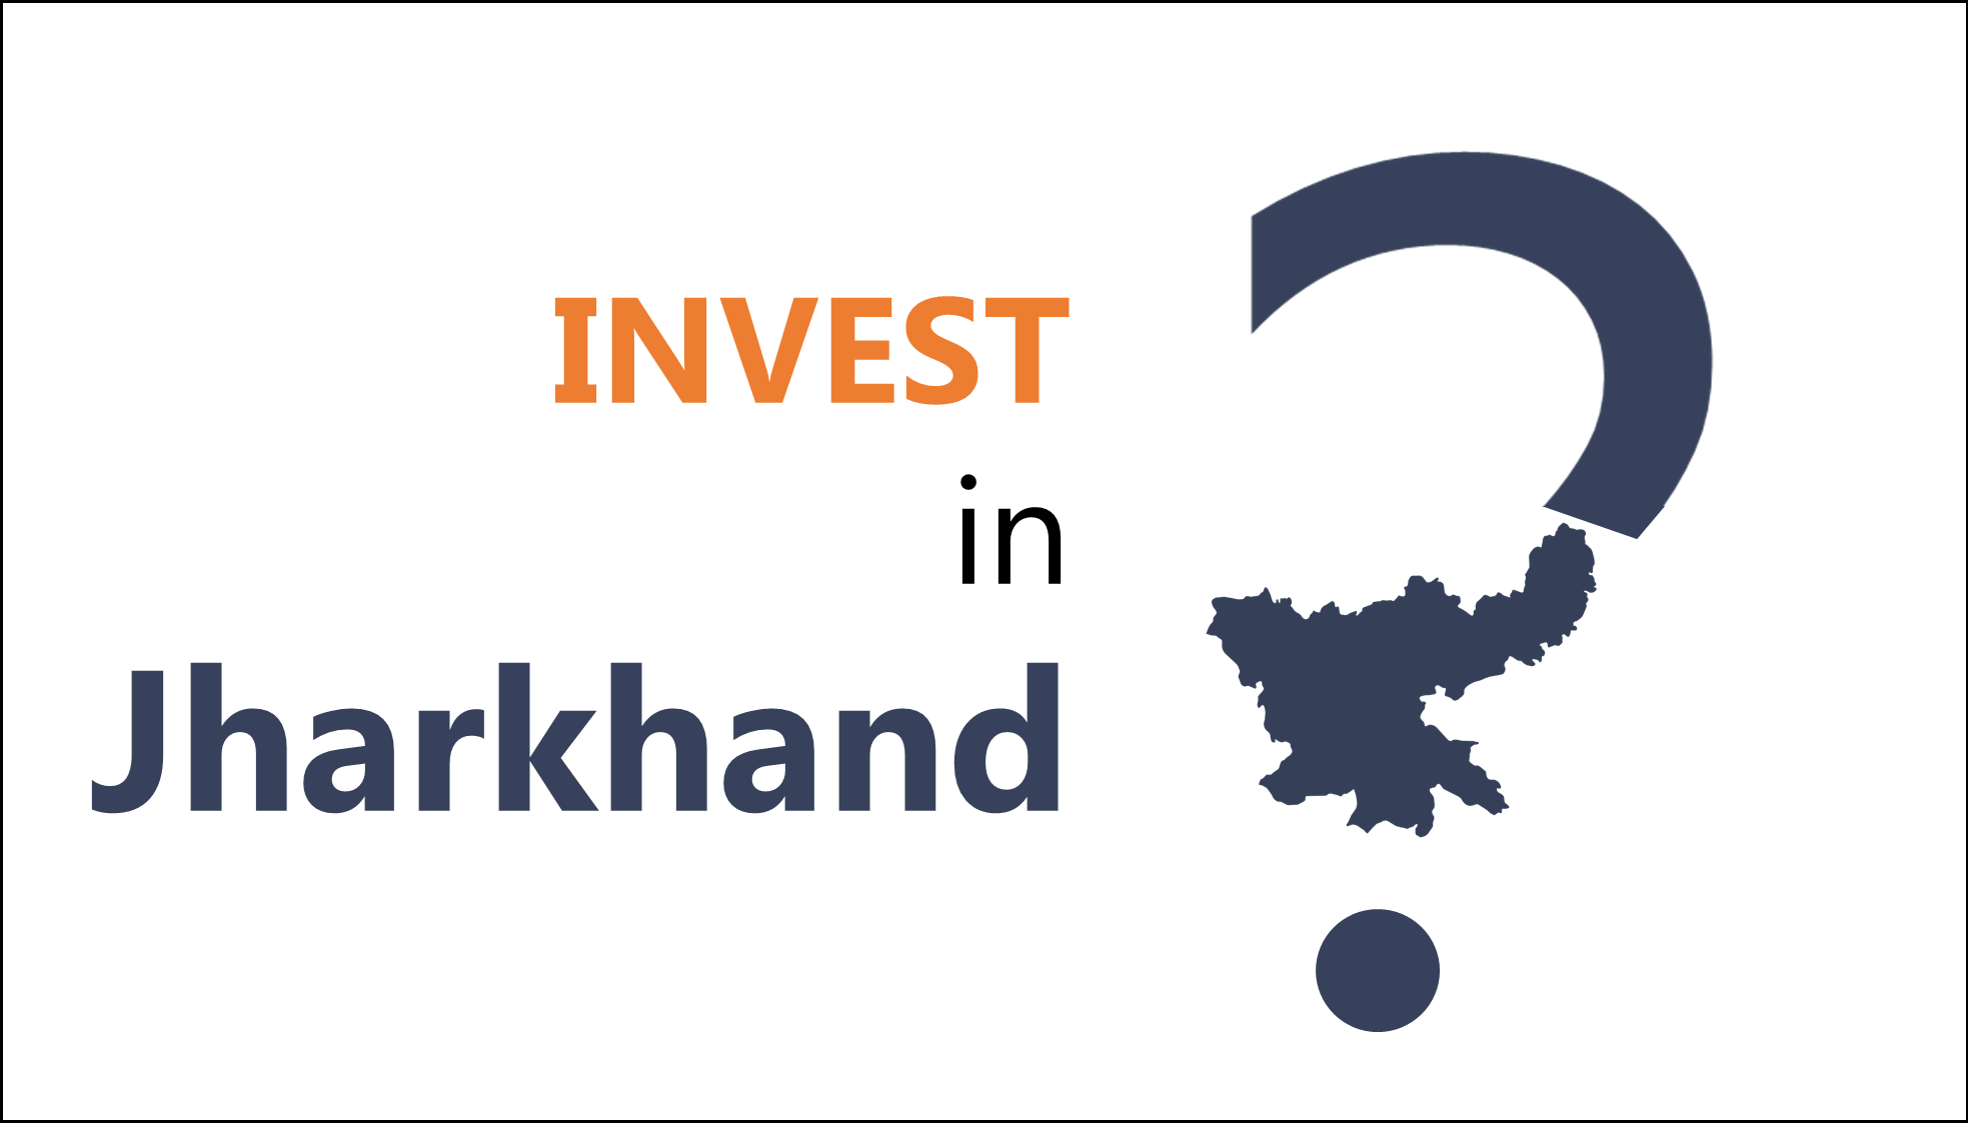 Jharkhand: for Garment Manufacturing